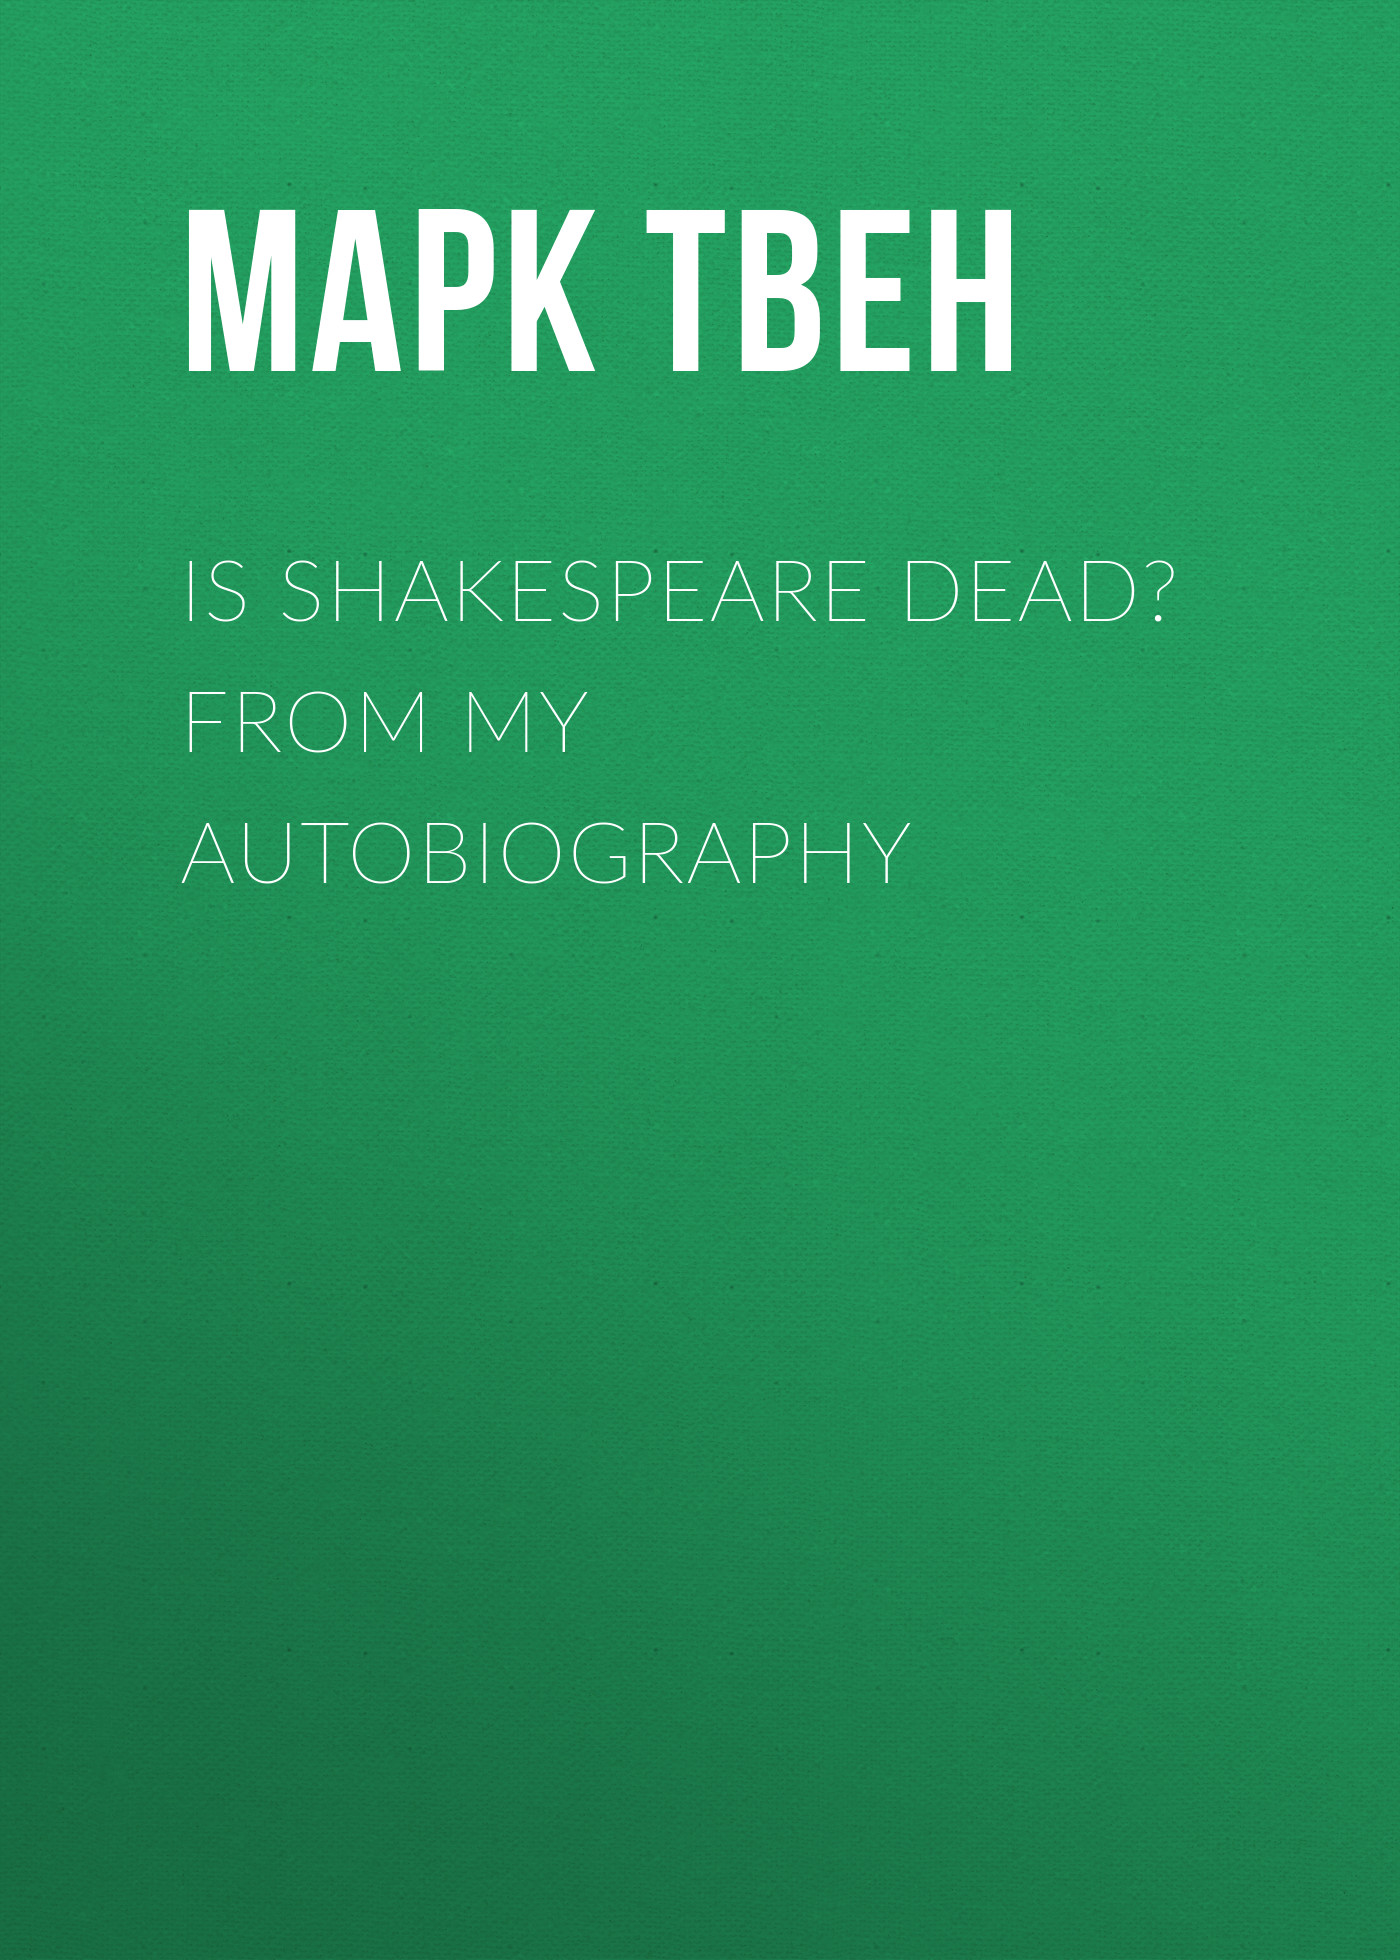 цена на Марк Твен Is Shakespeare Dead? From My Autobiography